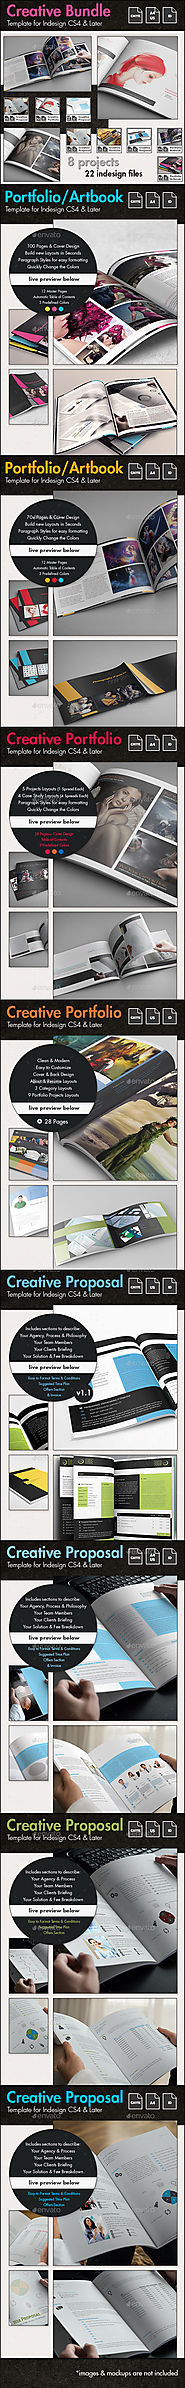 Portfolio and Proposal Bundle